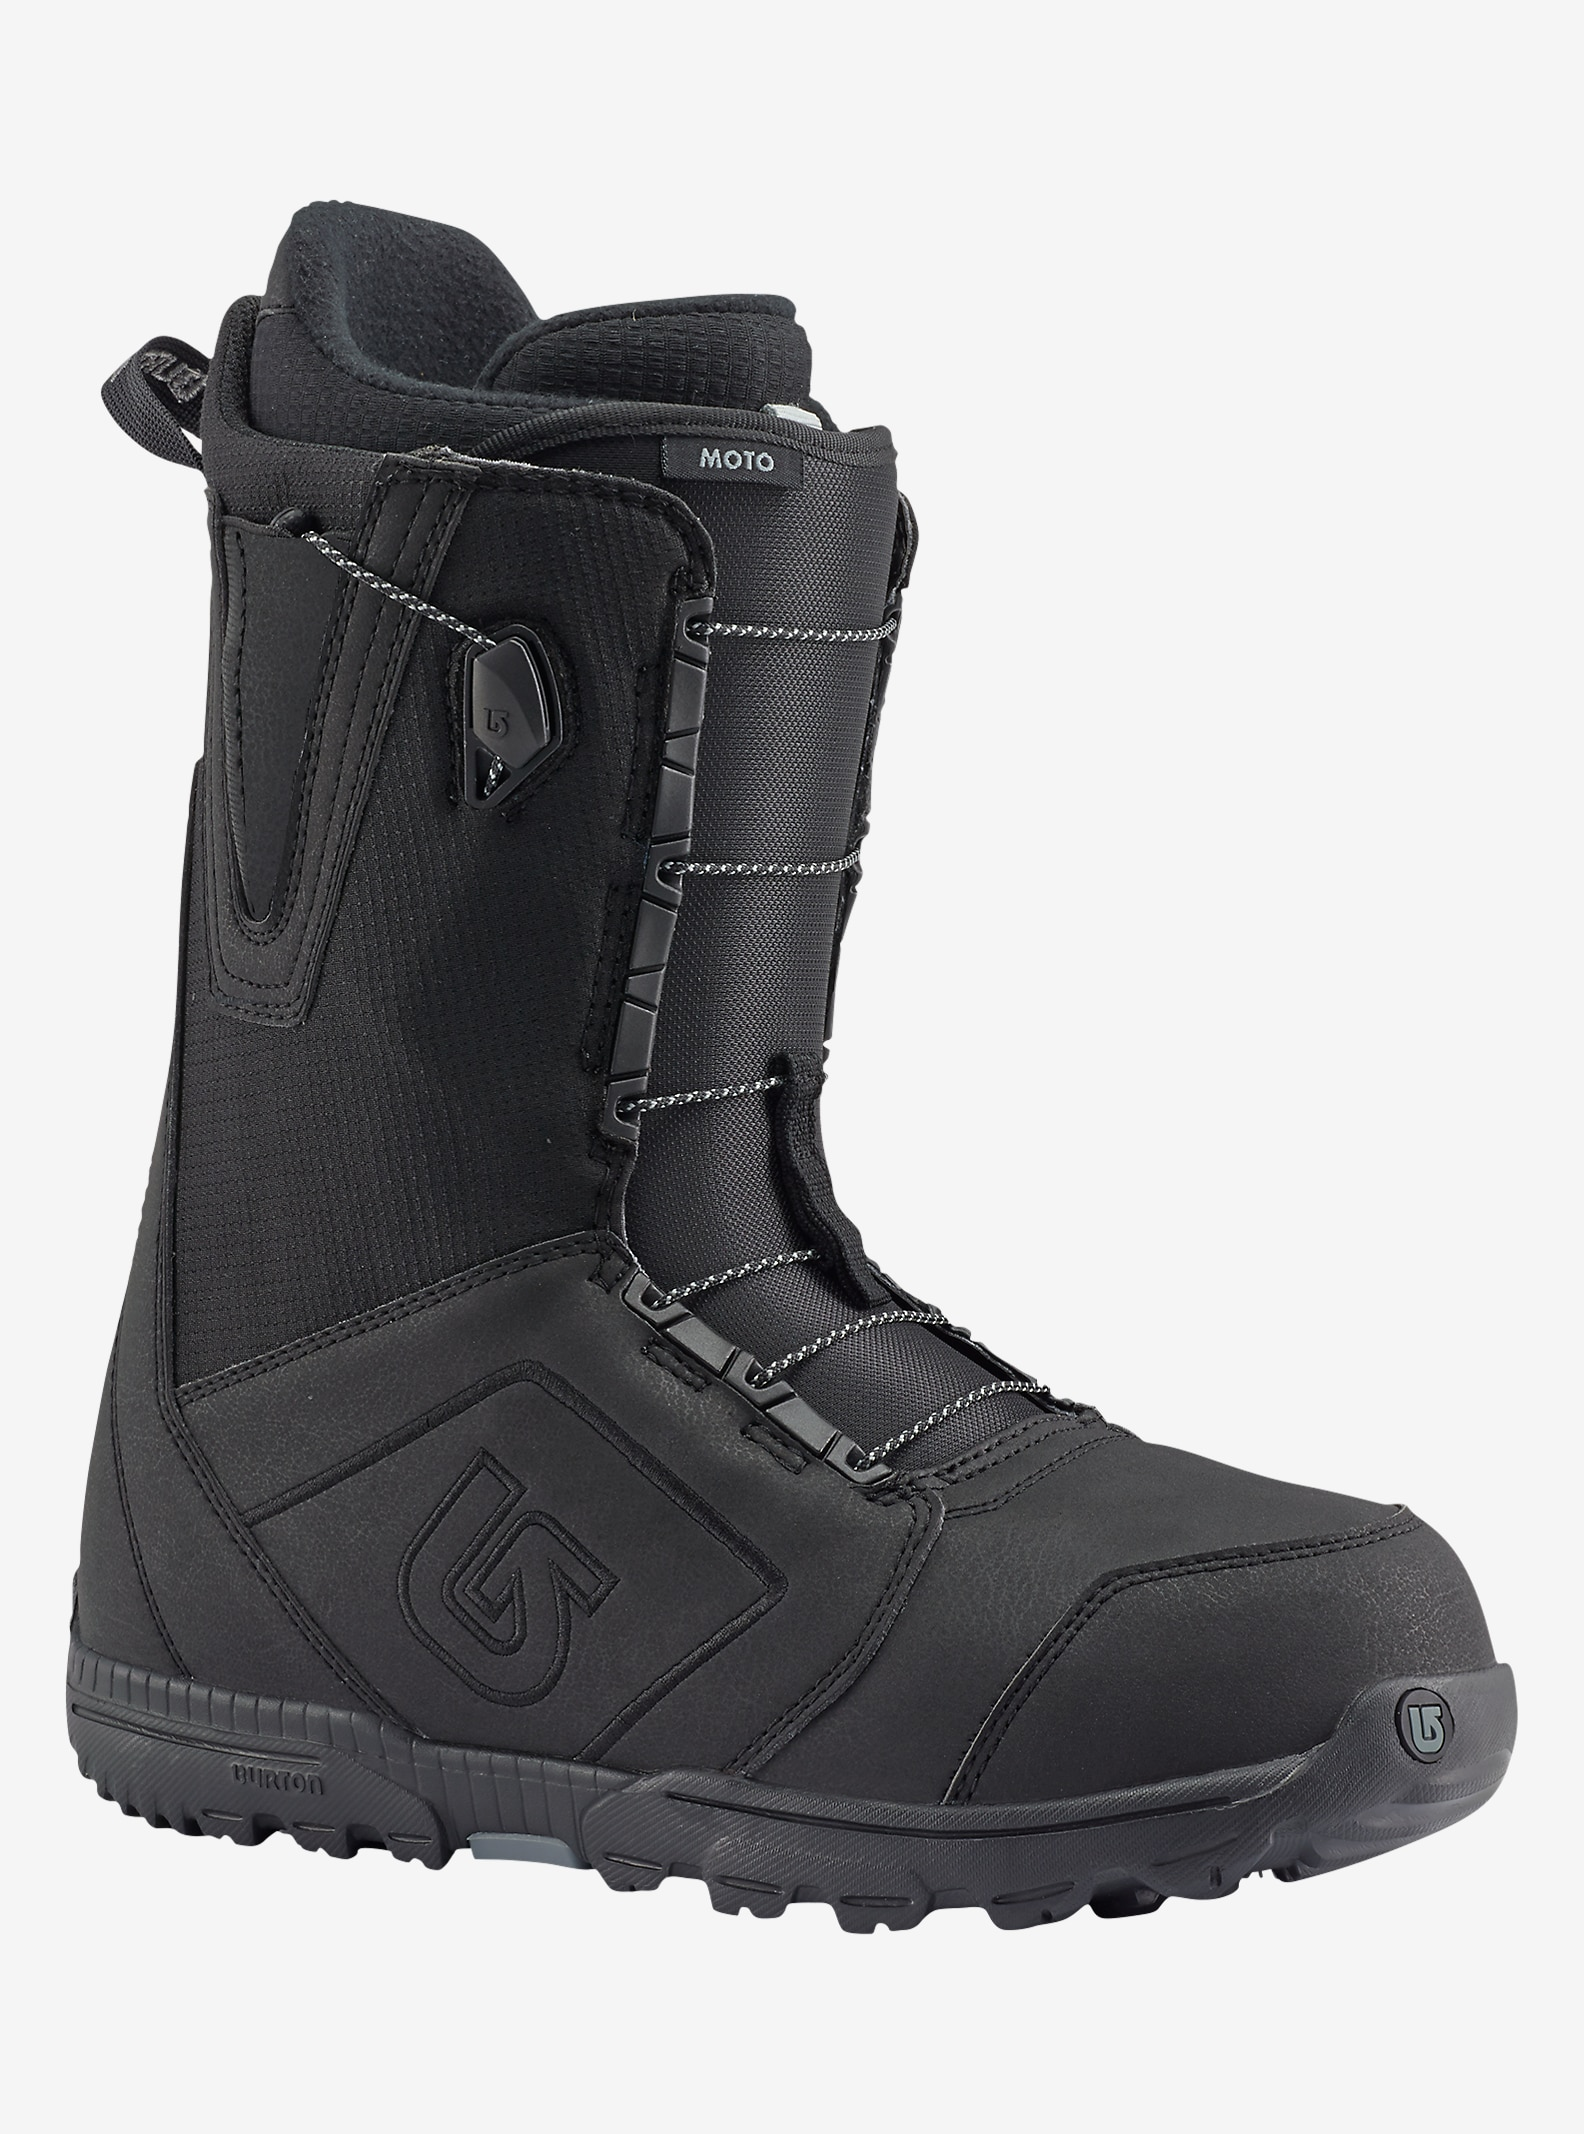 Burton Moto Snowboard Boot shown in Black